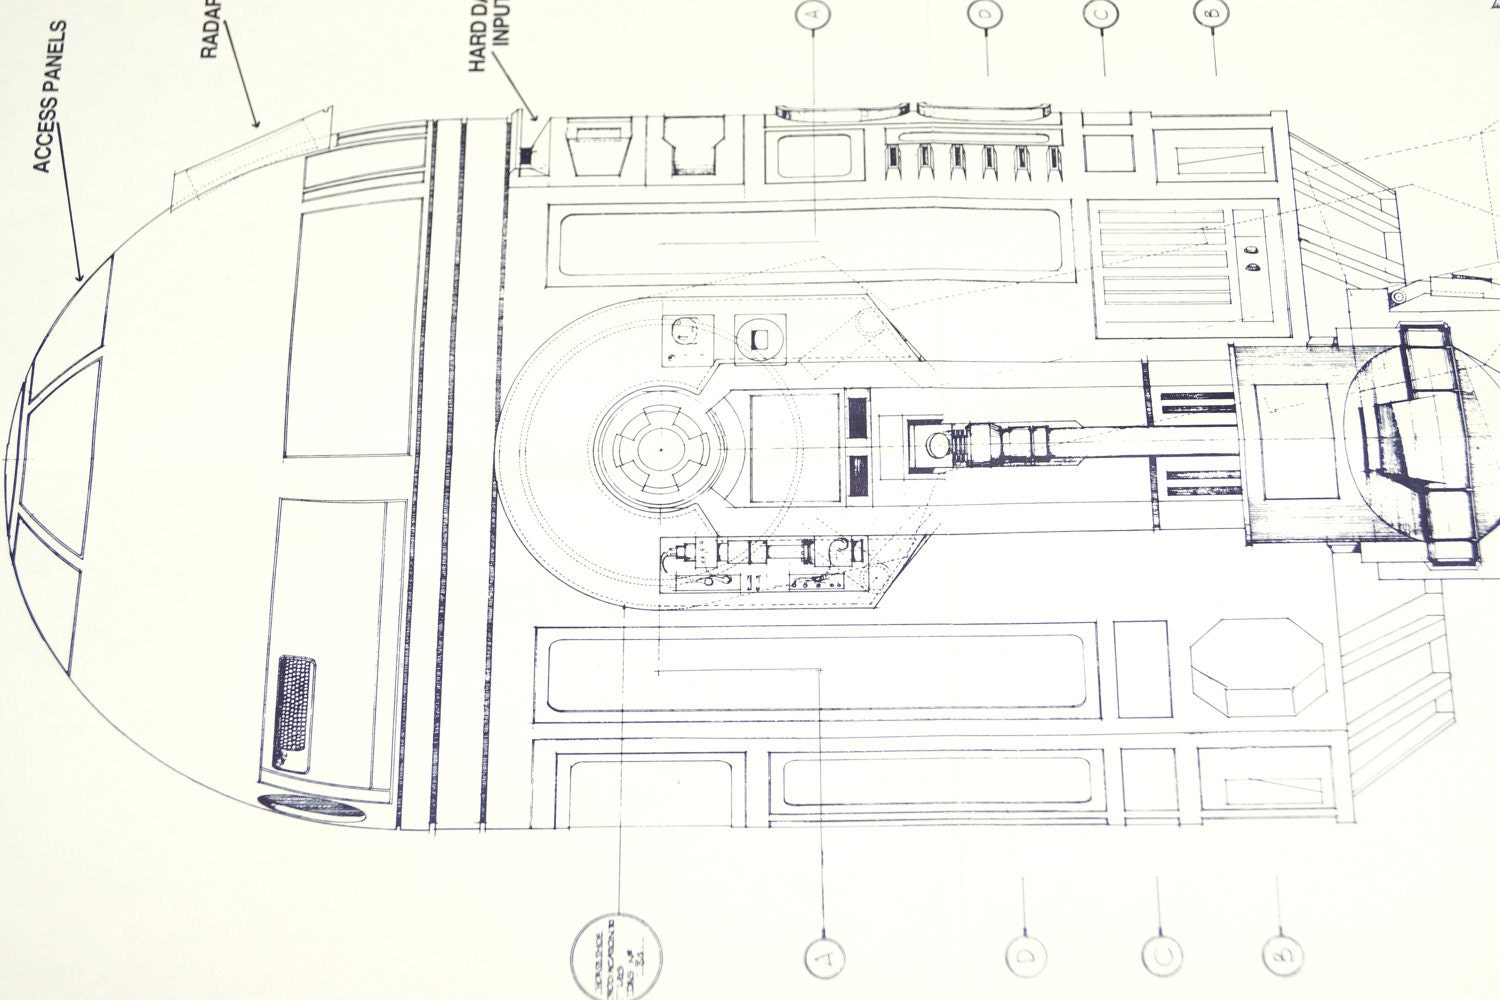 Vintage Star Wars Blueprint For R2 D2 Side Elevation 1